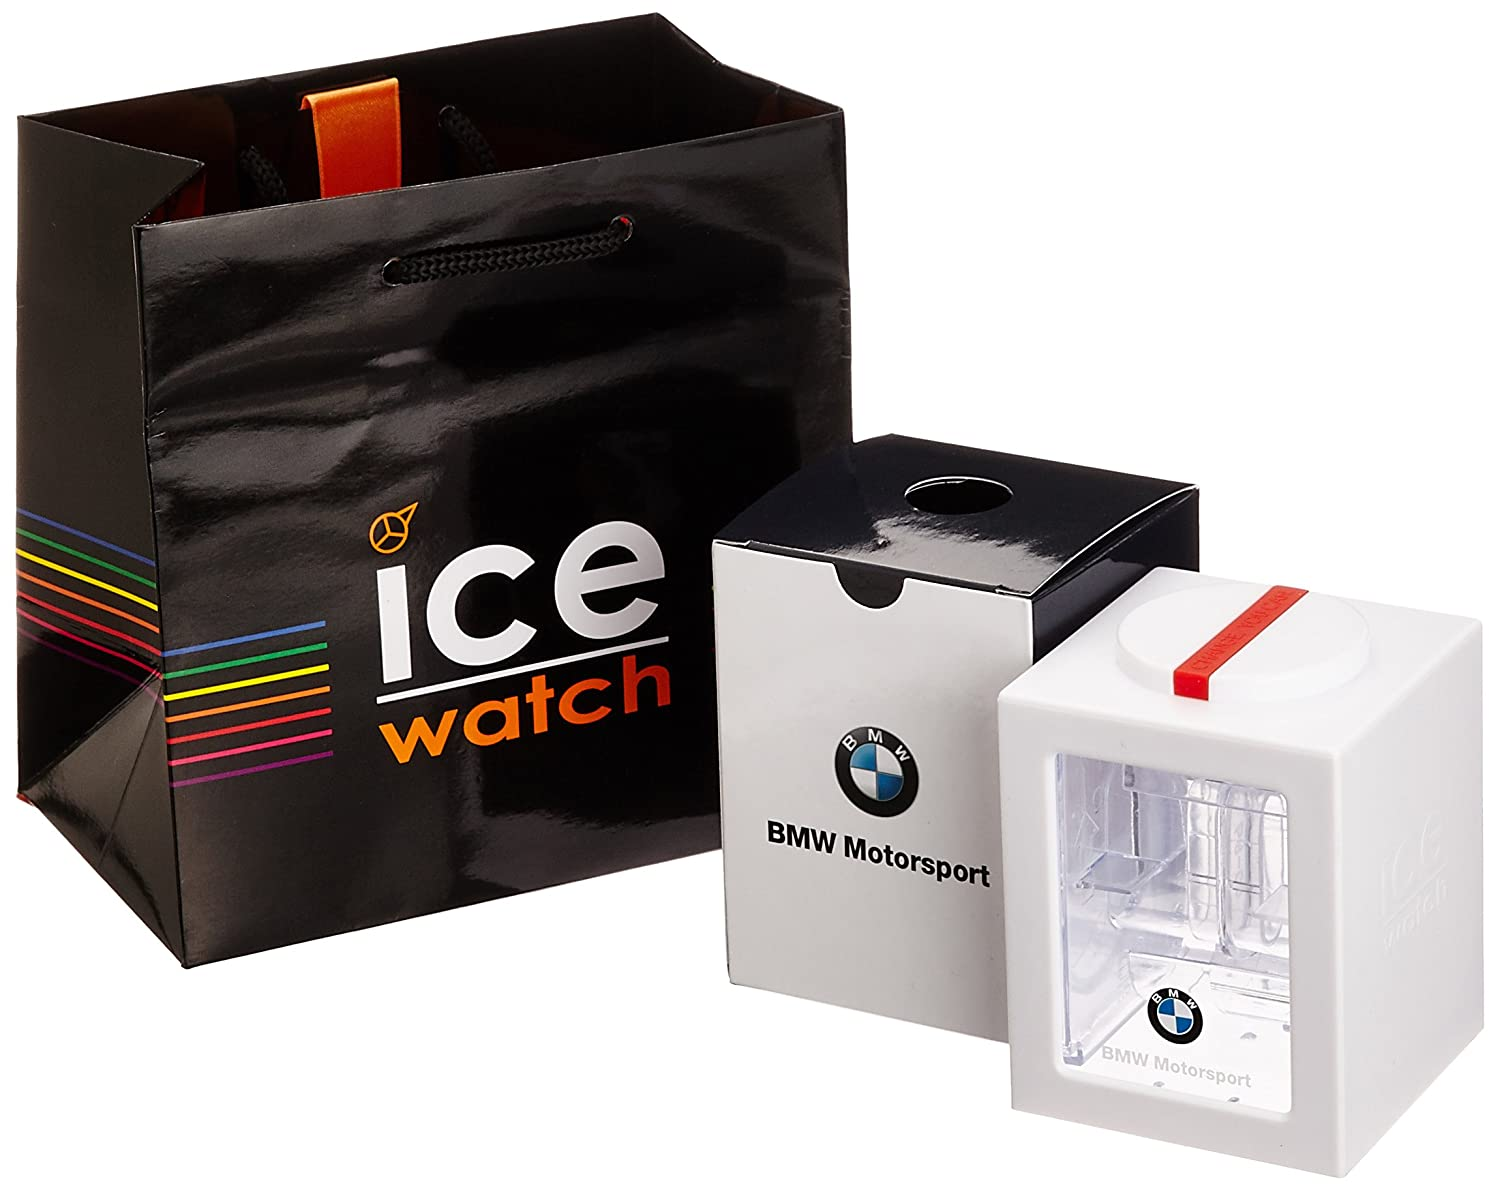 Amazon.com: Ice-Watch - BMW Motorsport - Chrono -White - Big: Ice-Watch: Watches